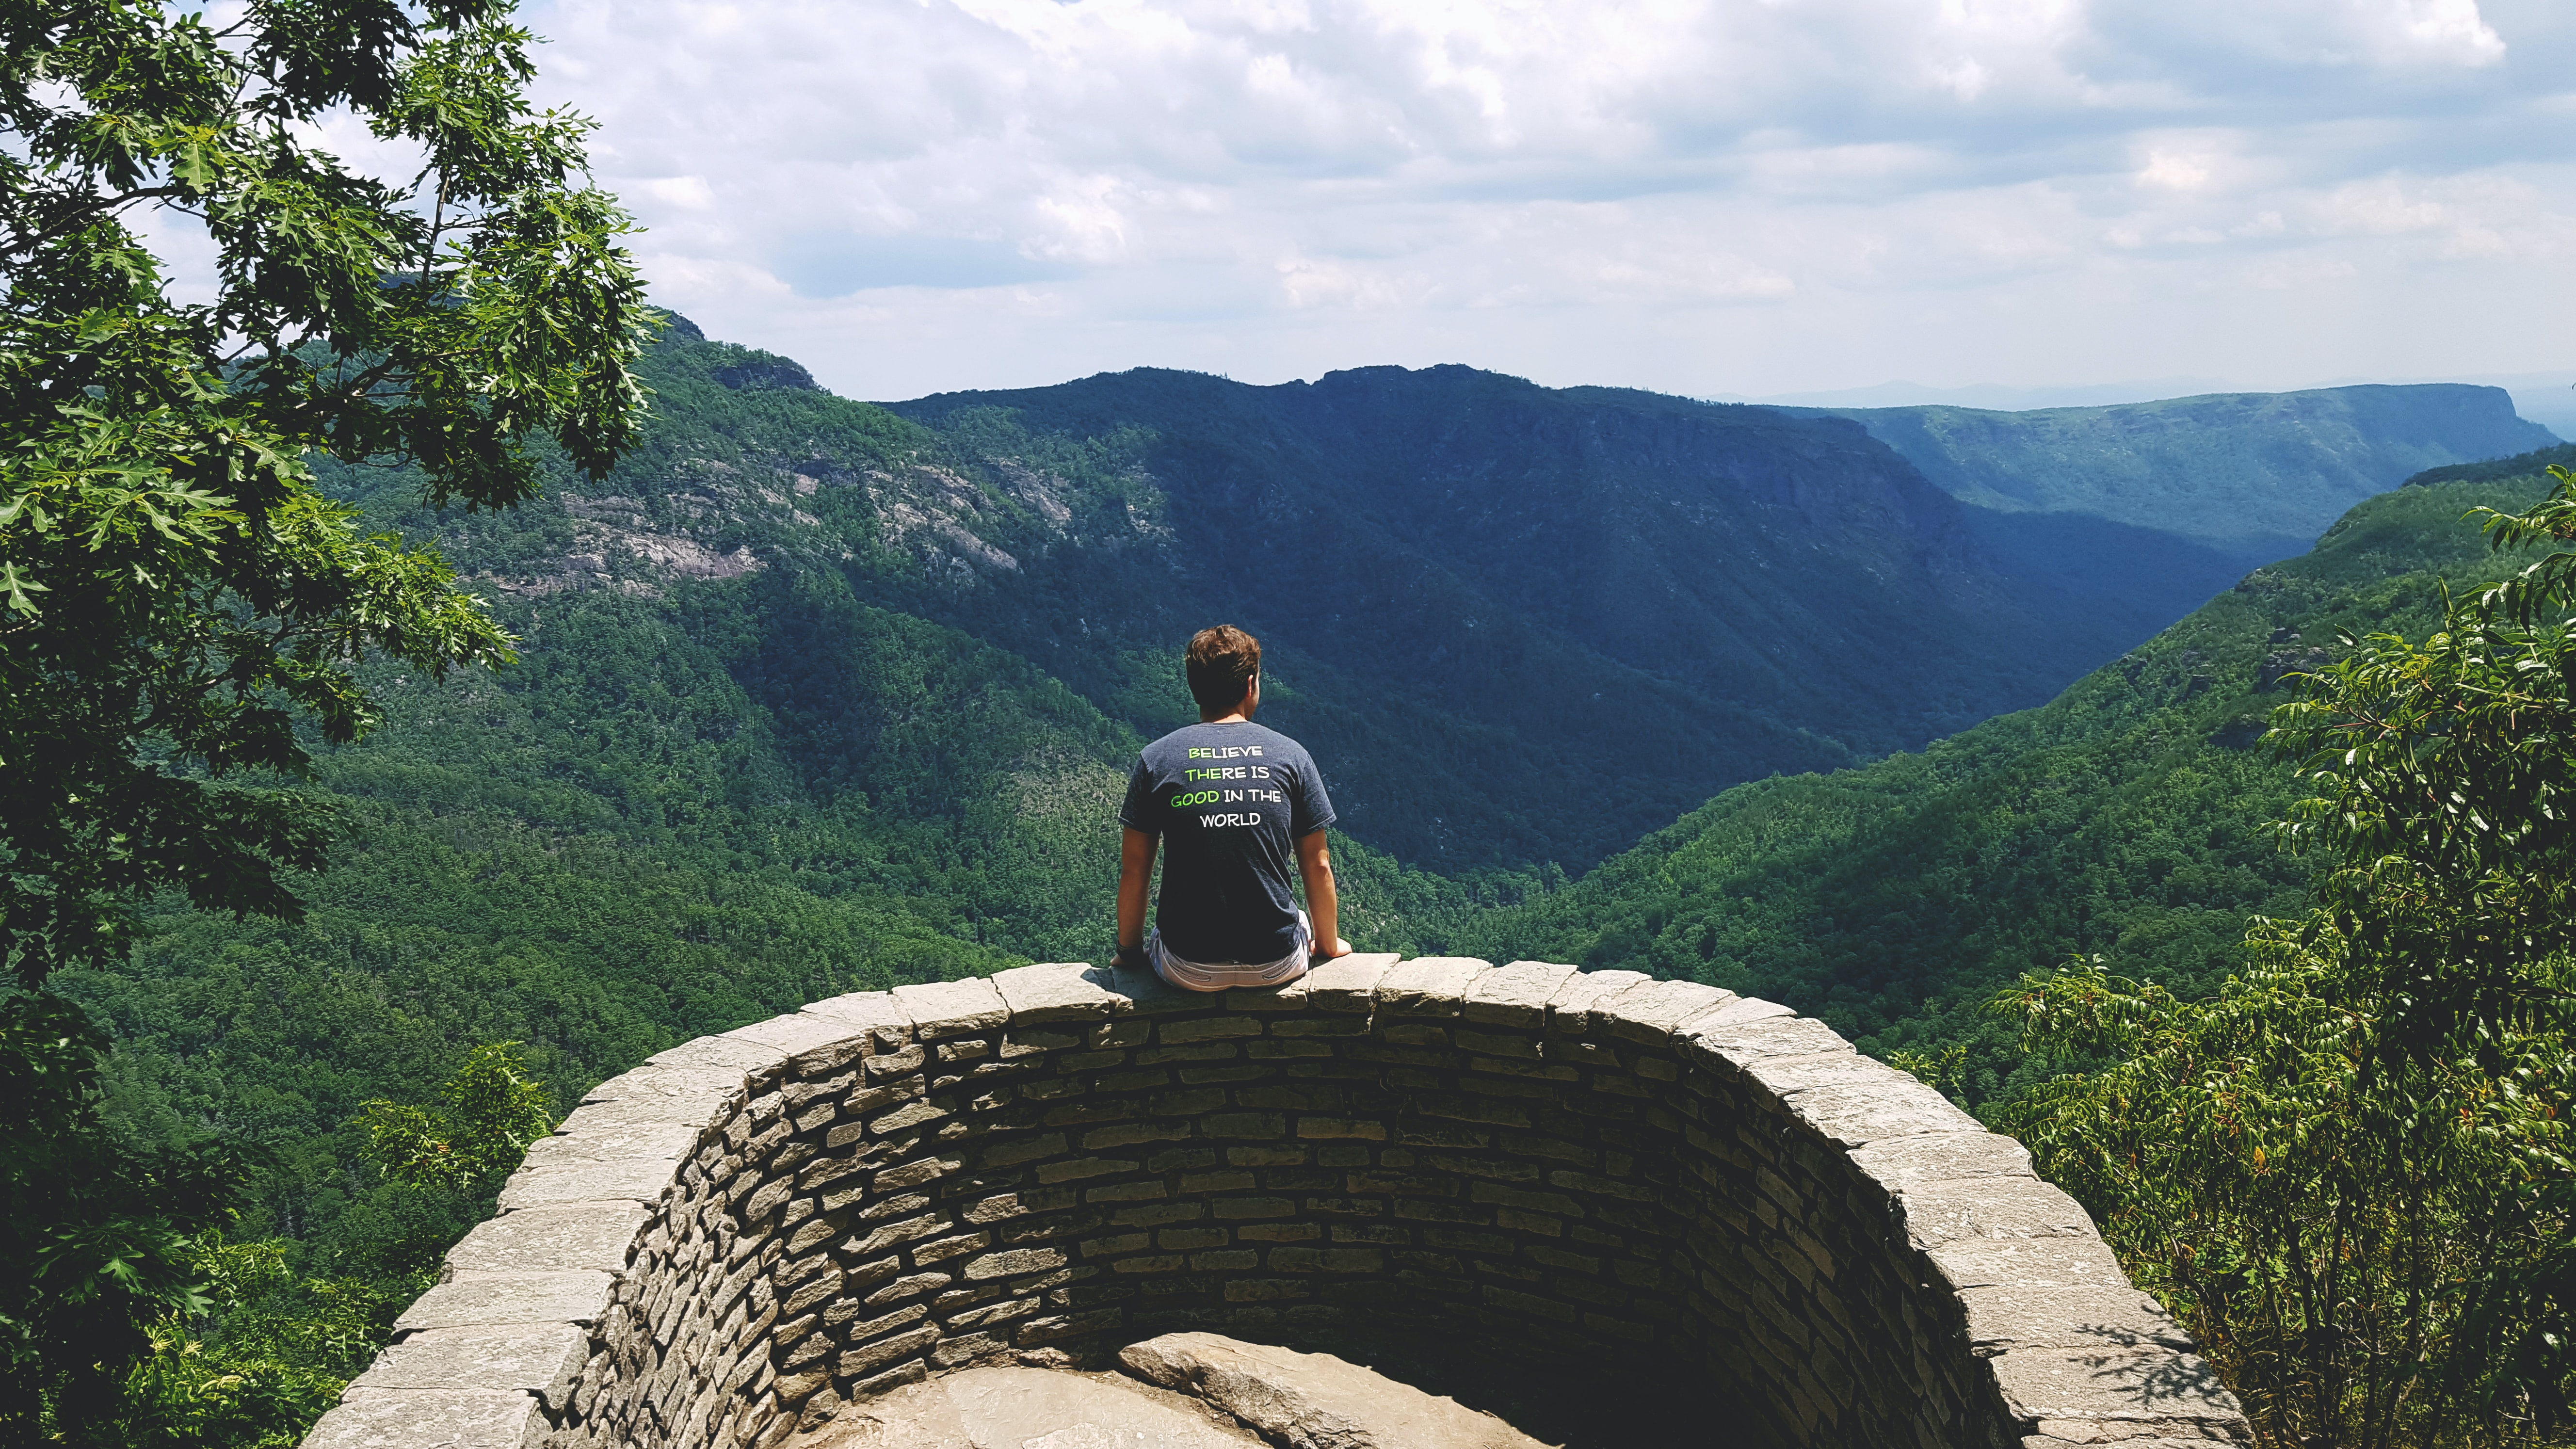 A man sitting on a small stone wall overlooking a green mountain valley